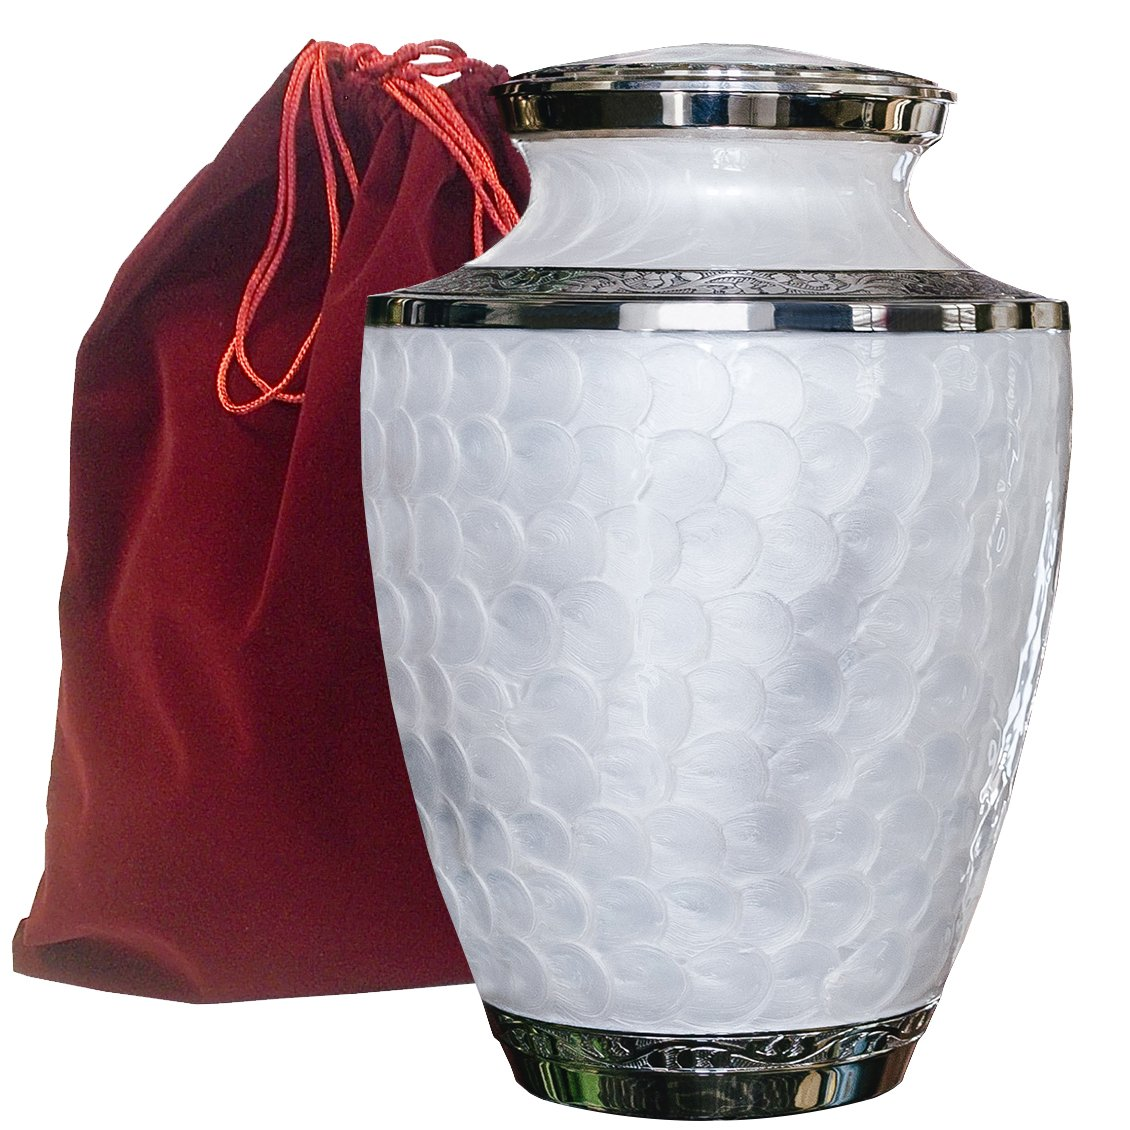 Everlasting Love Beautiful and Timeless White Adult Cremation Urn For Human Ashes - This Large Elegant Mother of Peal Enamel and Nickel Urn Is a Perfect Tribute to Honor Your Loved One- w Velvet Bag